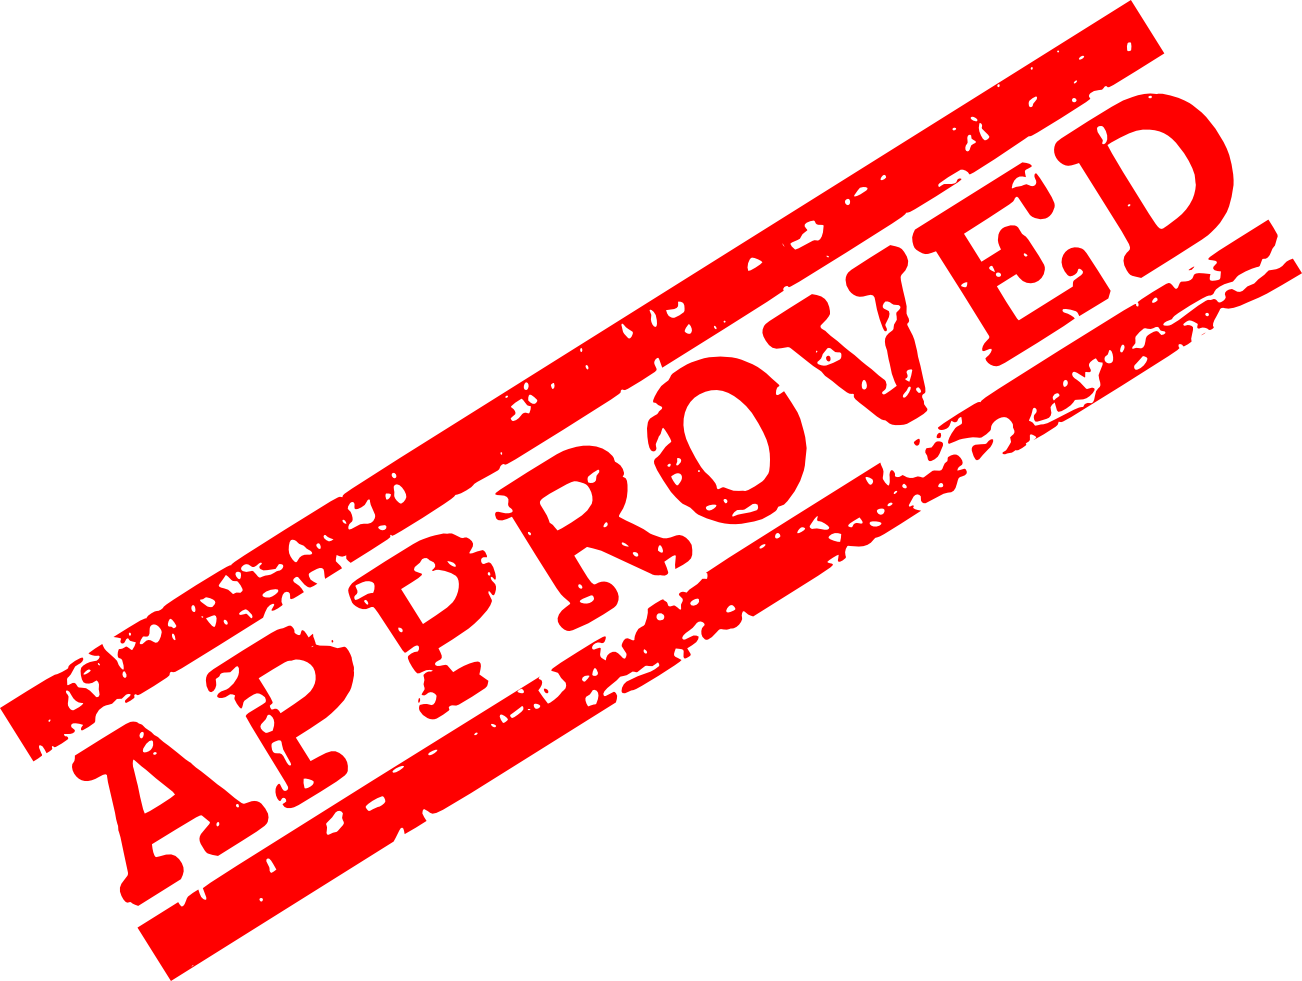 5 Red Green Approved Stamp Png Transparent Onlygfx Com